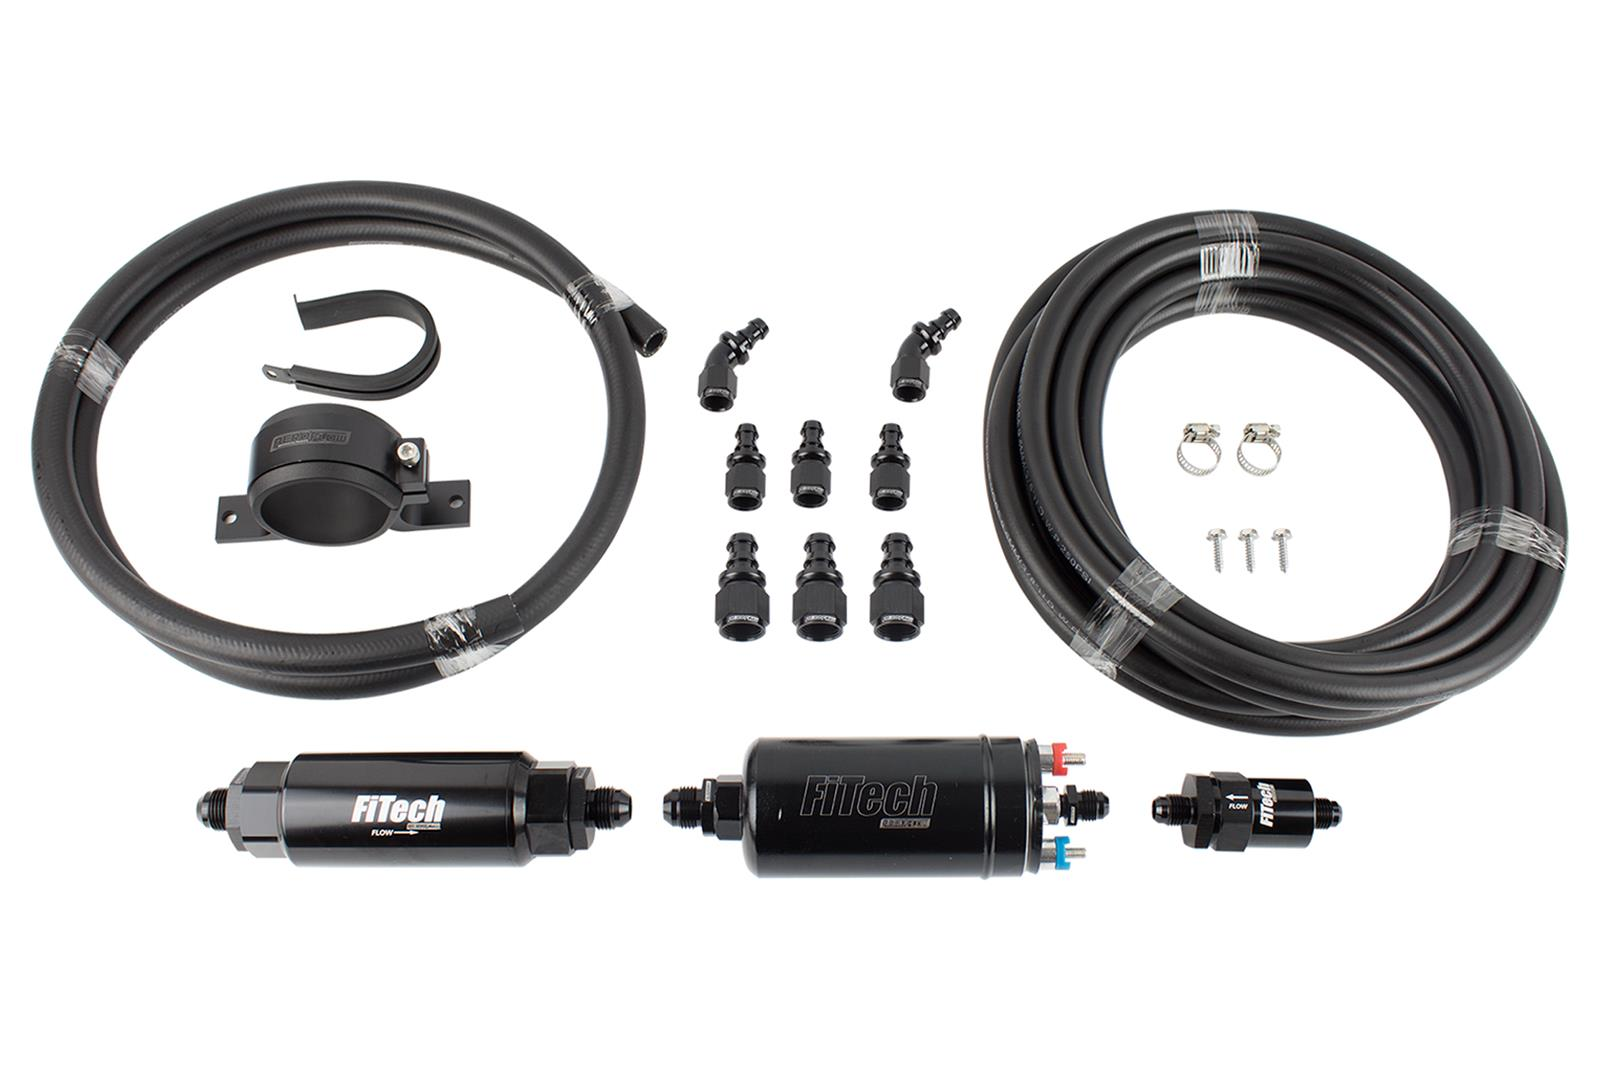 hight resolution of fitech fuel delivery kits 40005 free shipping on orders over 99 at summit racing